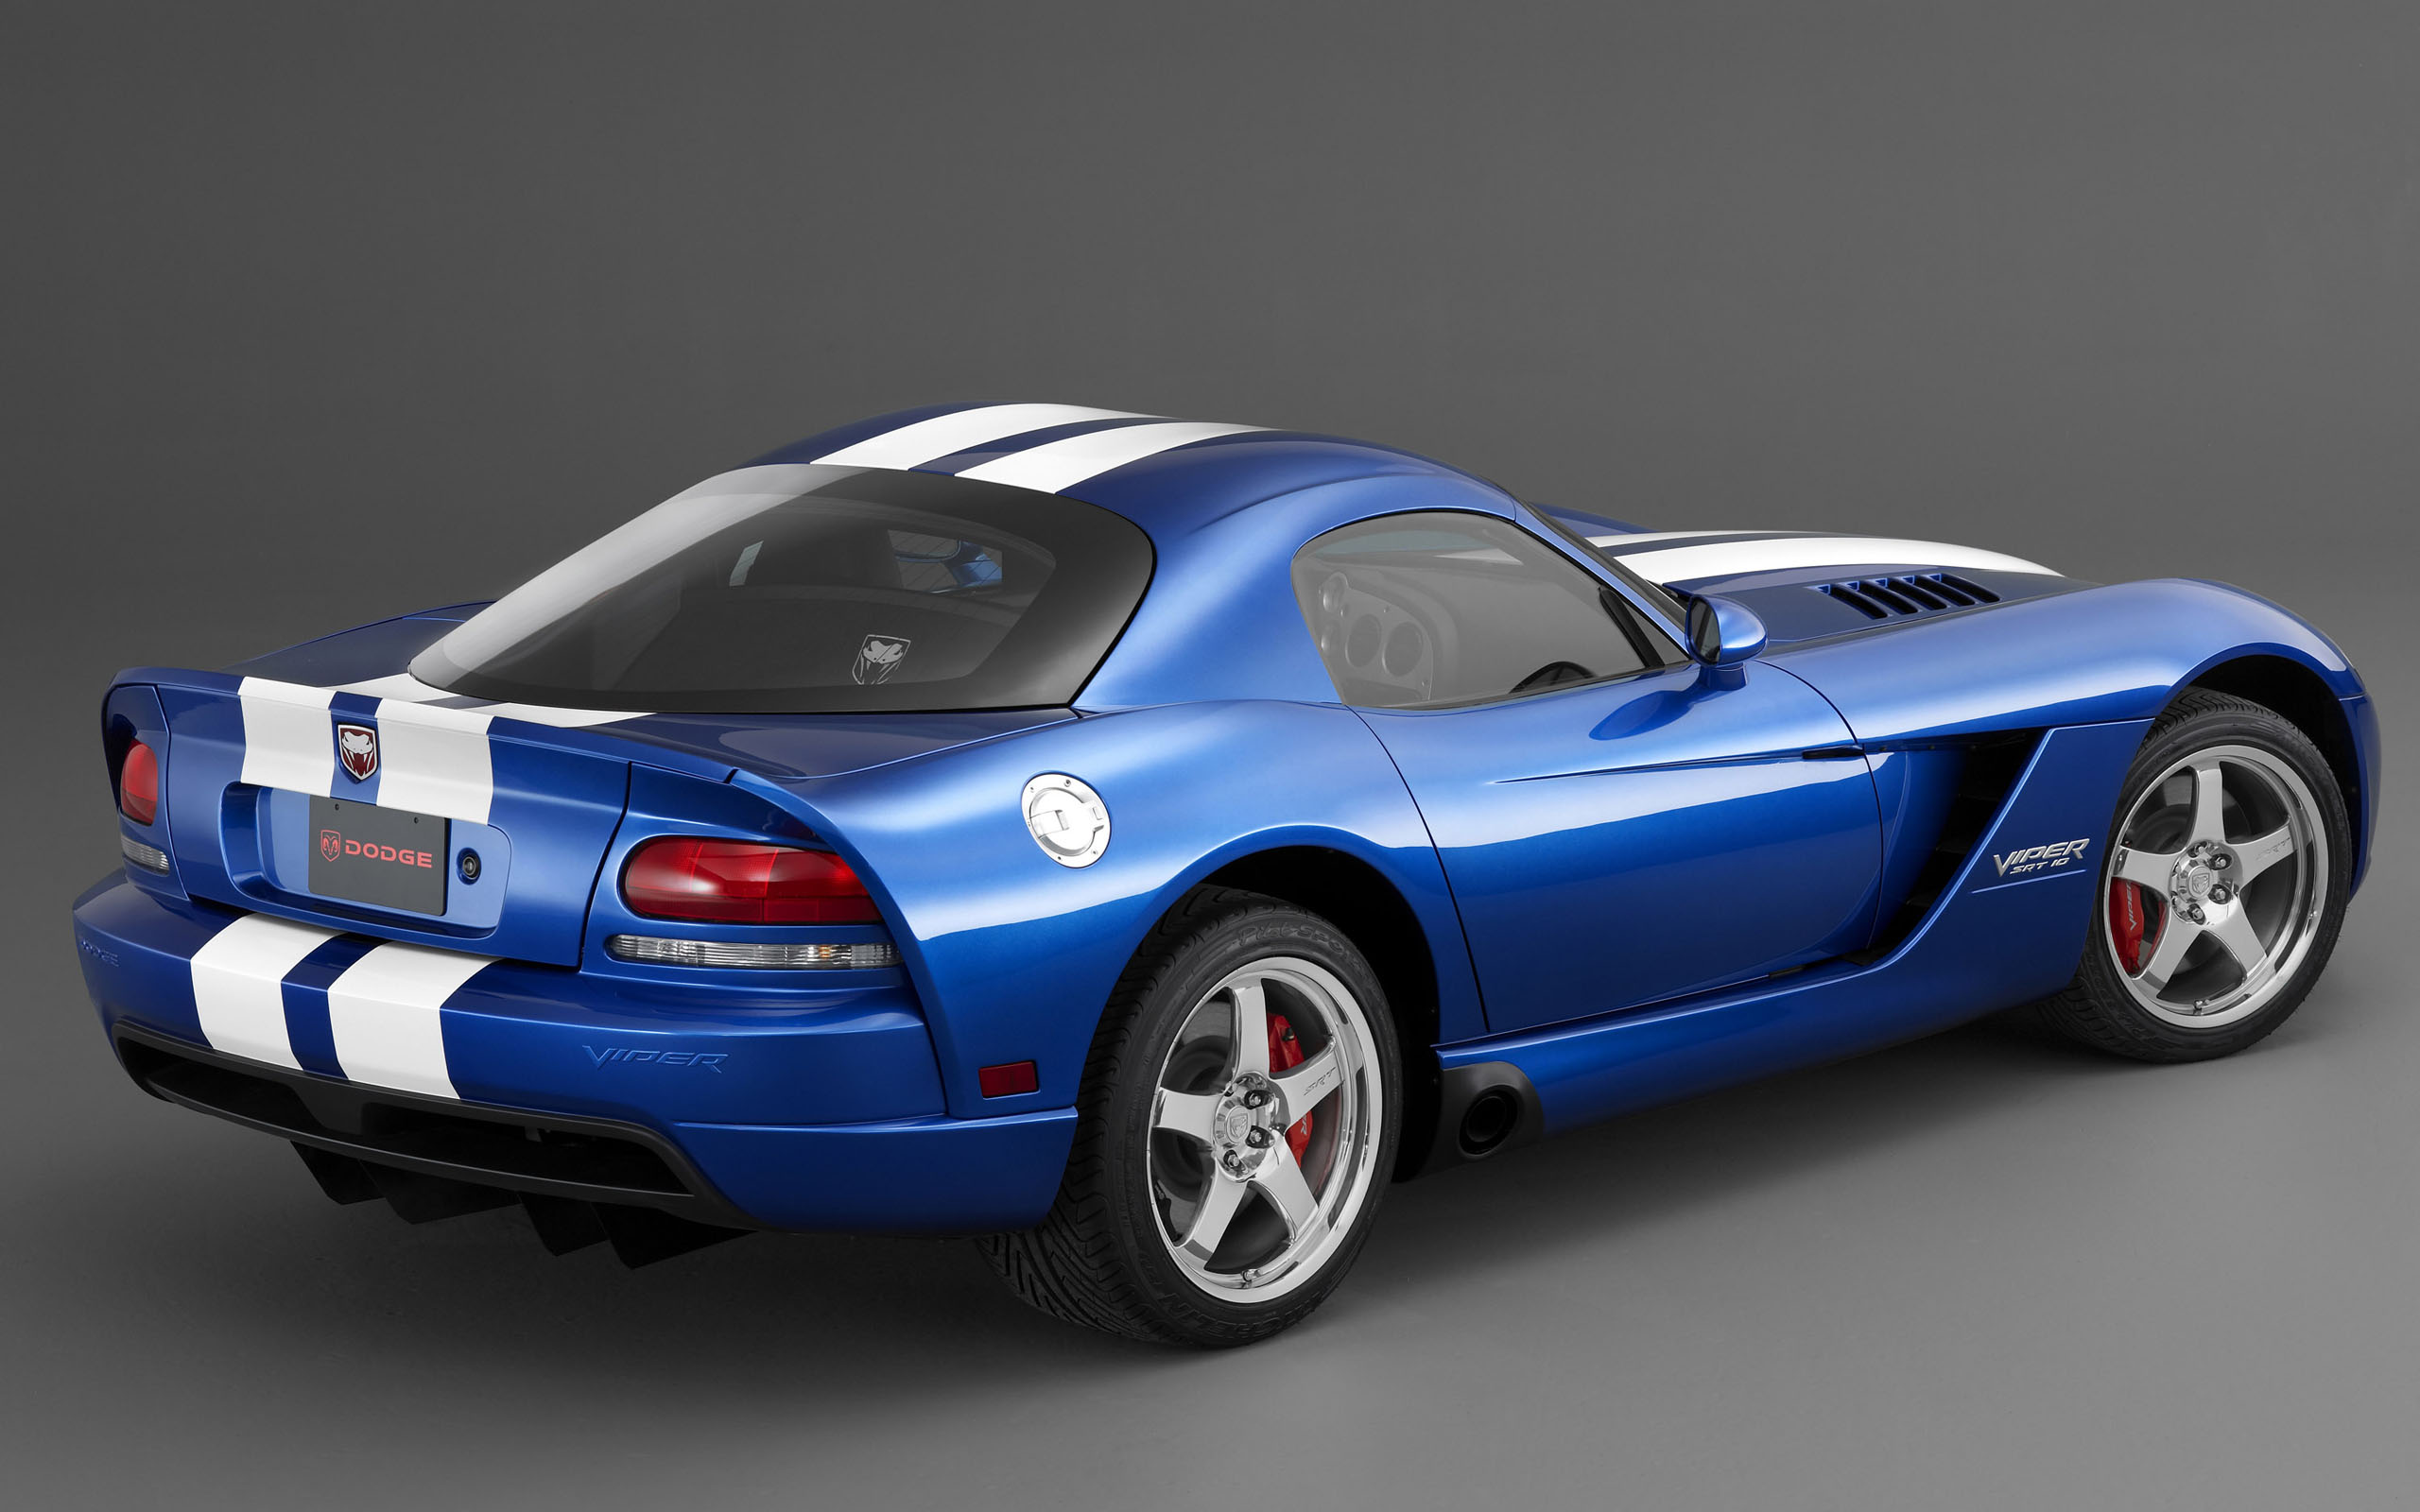 03-dodge-viper-coupe